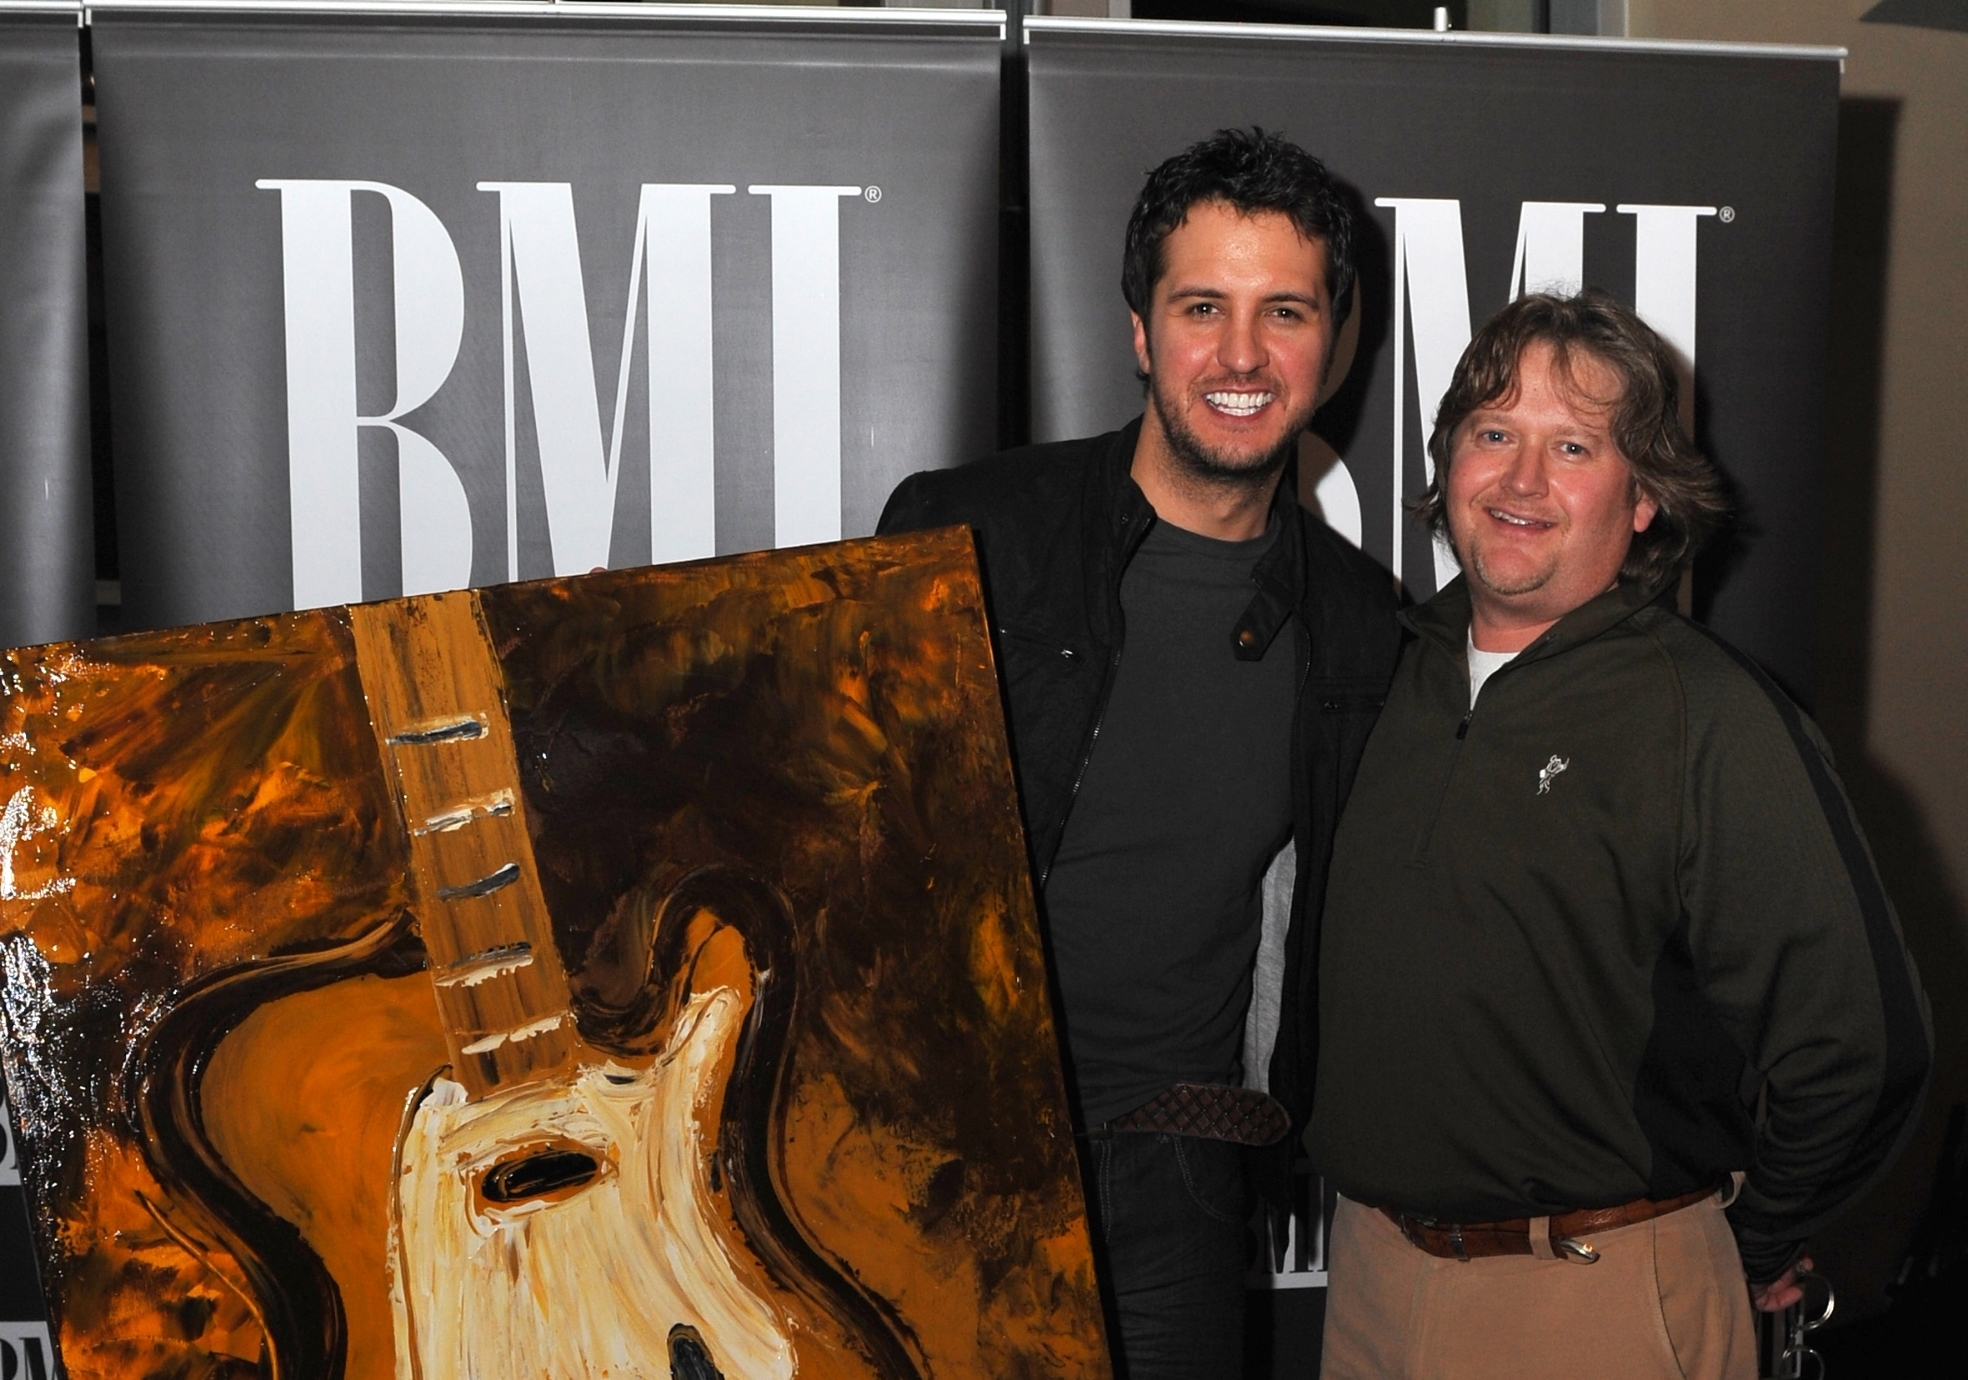 Luke Bryan's 1st #1 and 1st Hendon Painting (he has a some of each)